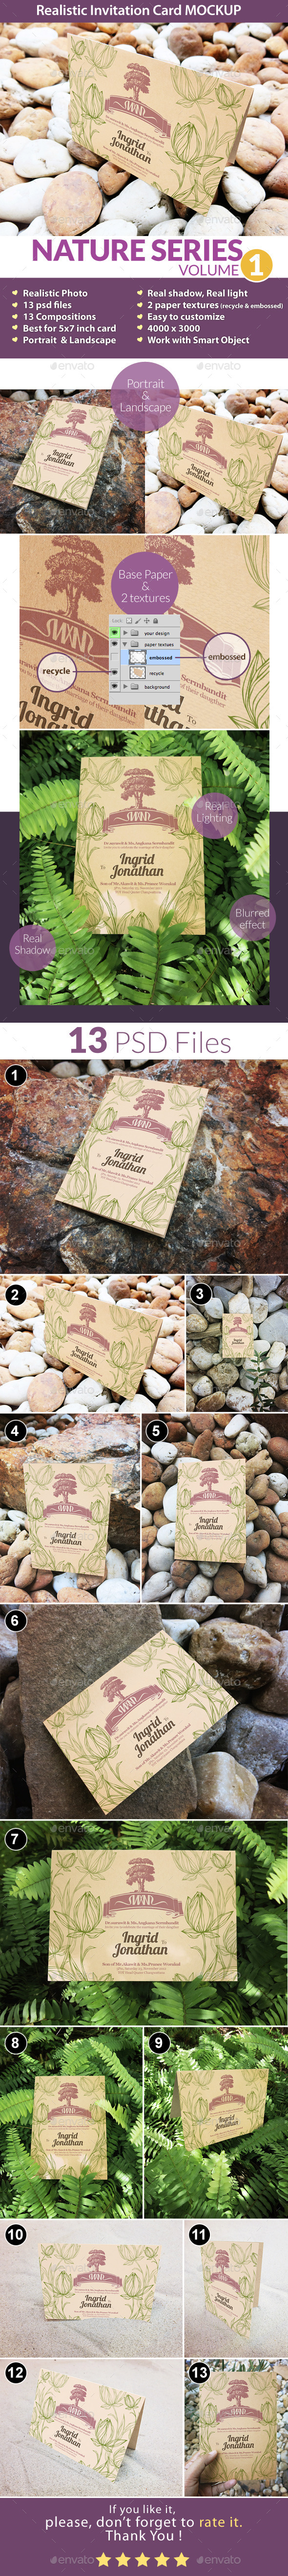 Invitation Card Mockup Nature Series Volume1 - Miscellaneous Print